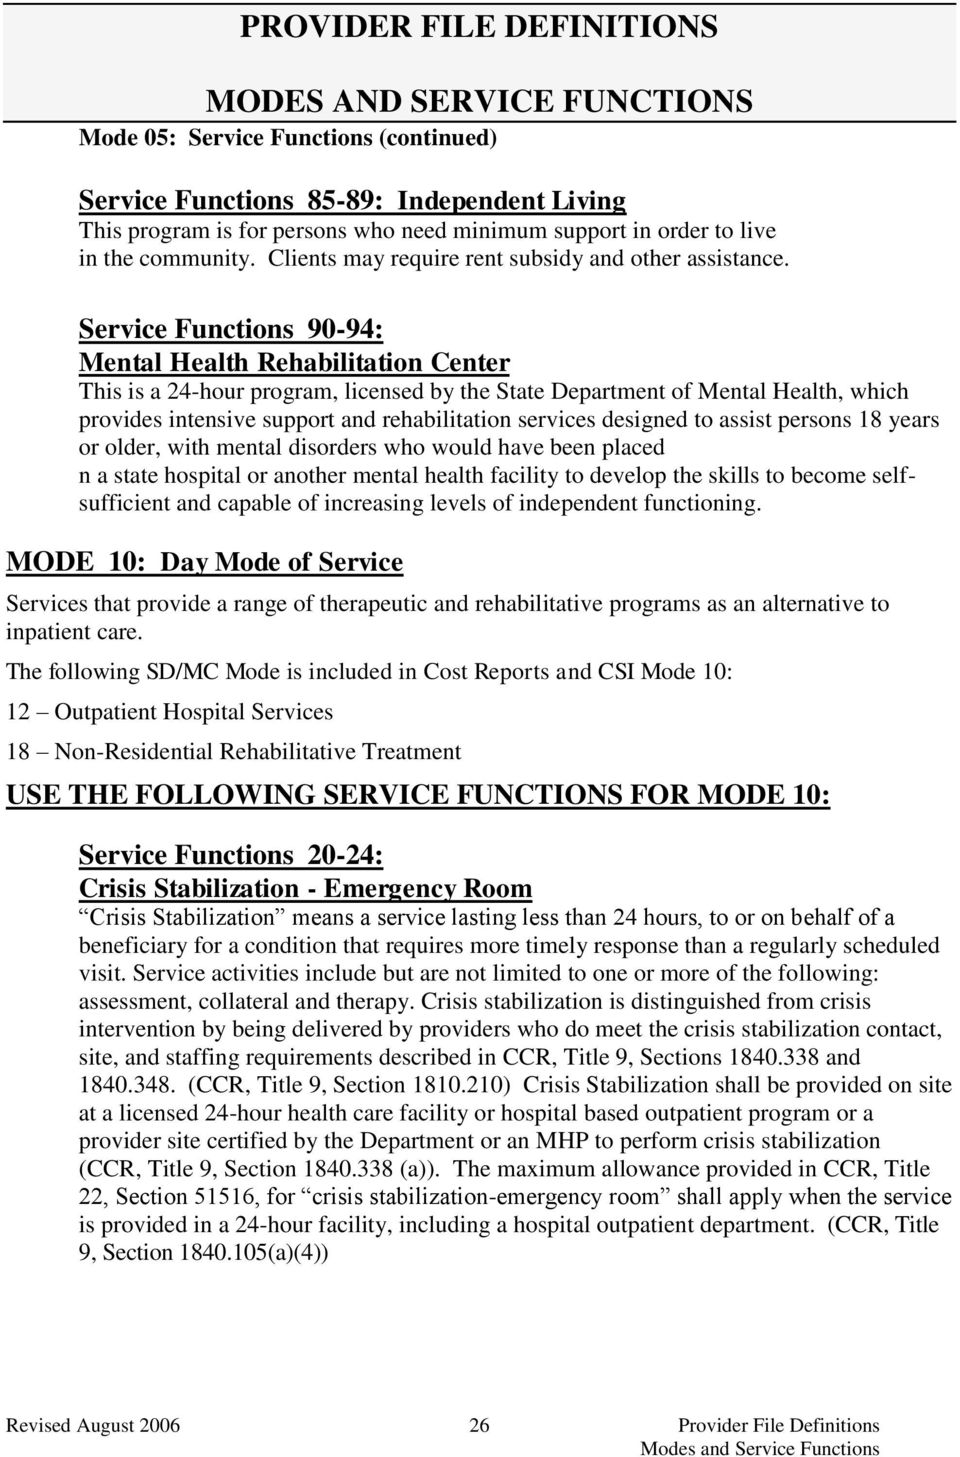 Service Functions 90-94: Mental Health Rehabilitation Center This is a 24-hour program, licensed by the State Department of Mental Health, which provides intensive support and rehabilitation services